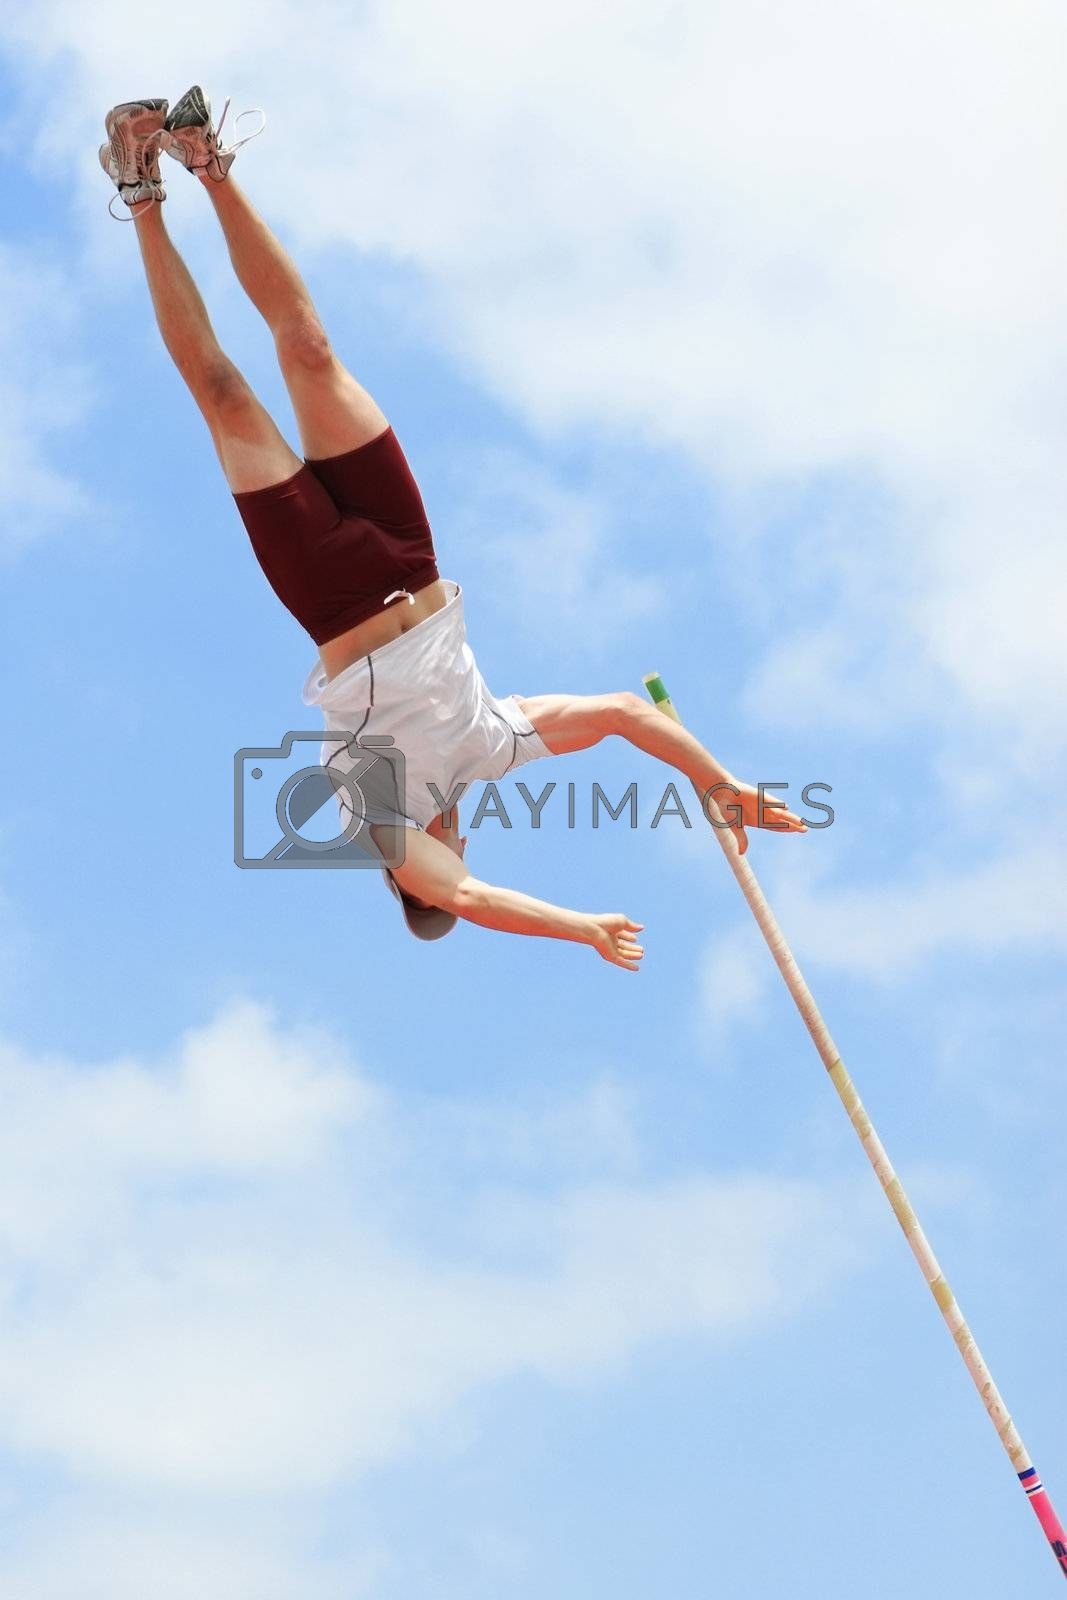 Pole vaulter has just released the pole while at the apex of his jump.